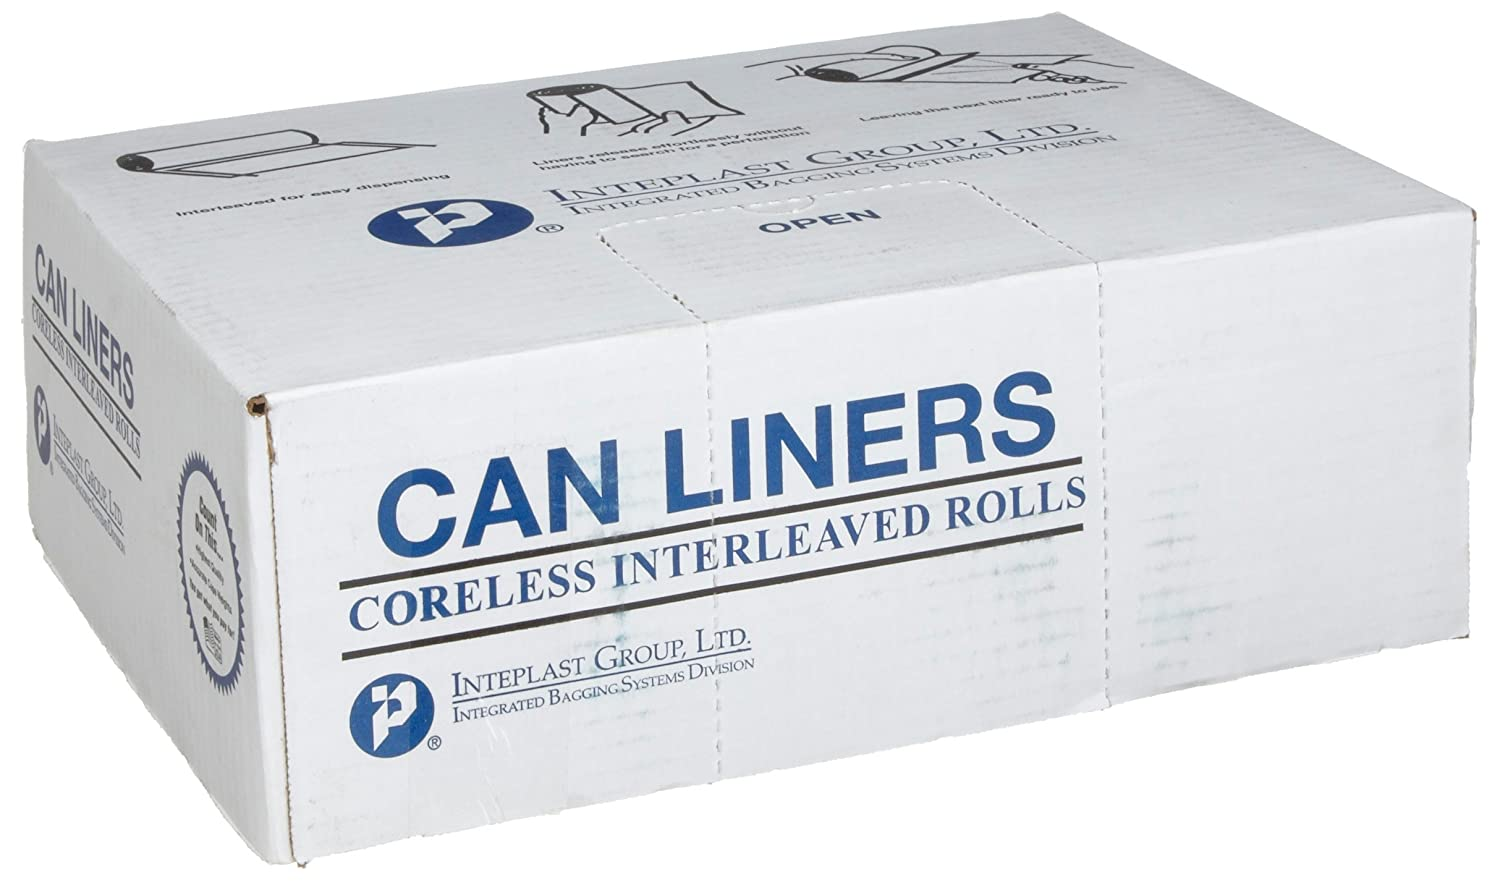 Black Color Inteplast Group S434822K 48 Length x 43 Width x 22 Mic Thickness Case of 6 Roll, 25 Bags per Roll HDPE Commercial Coreless Institutional Trash Can Liner